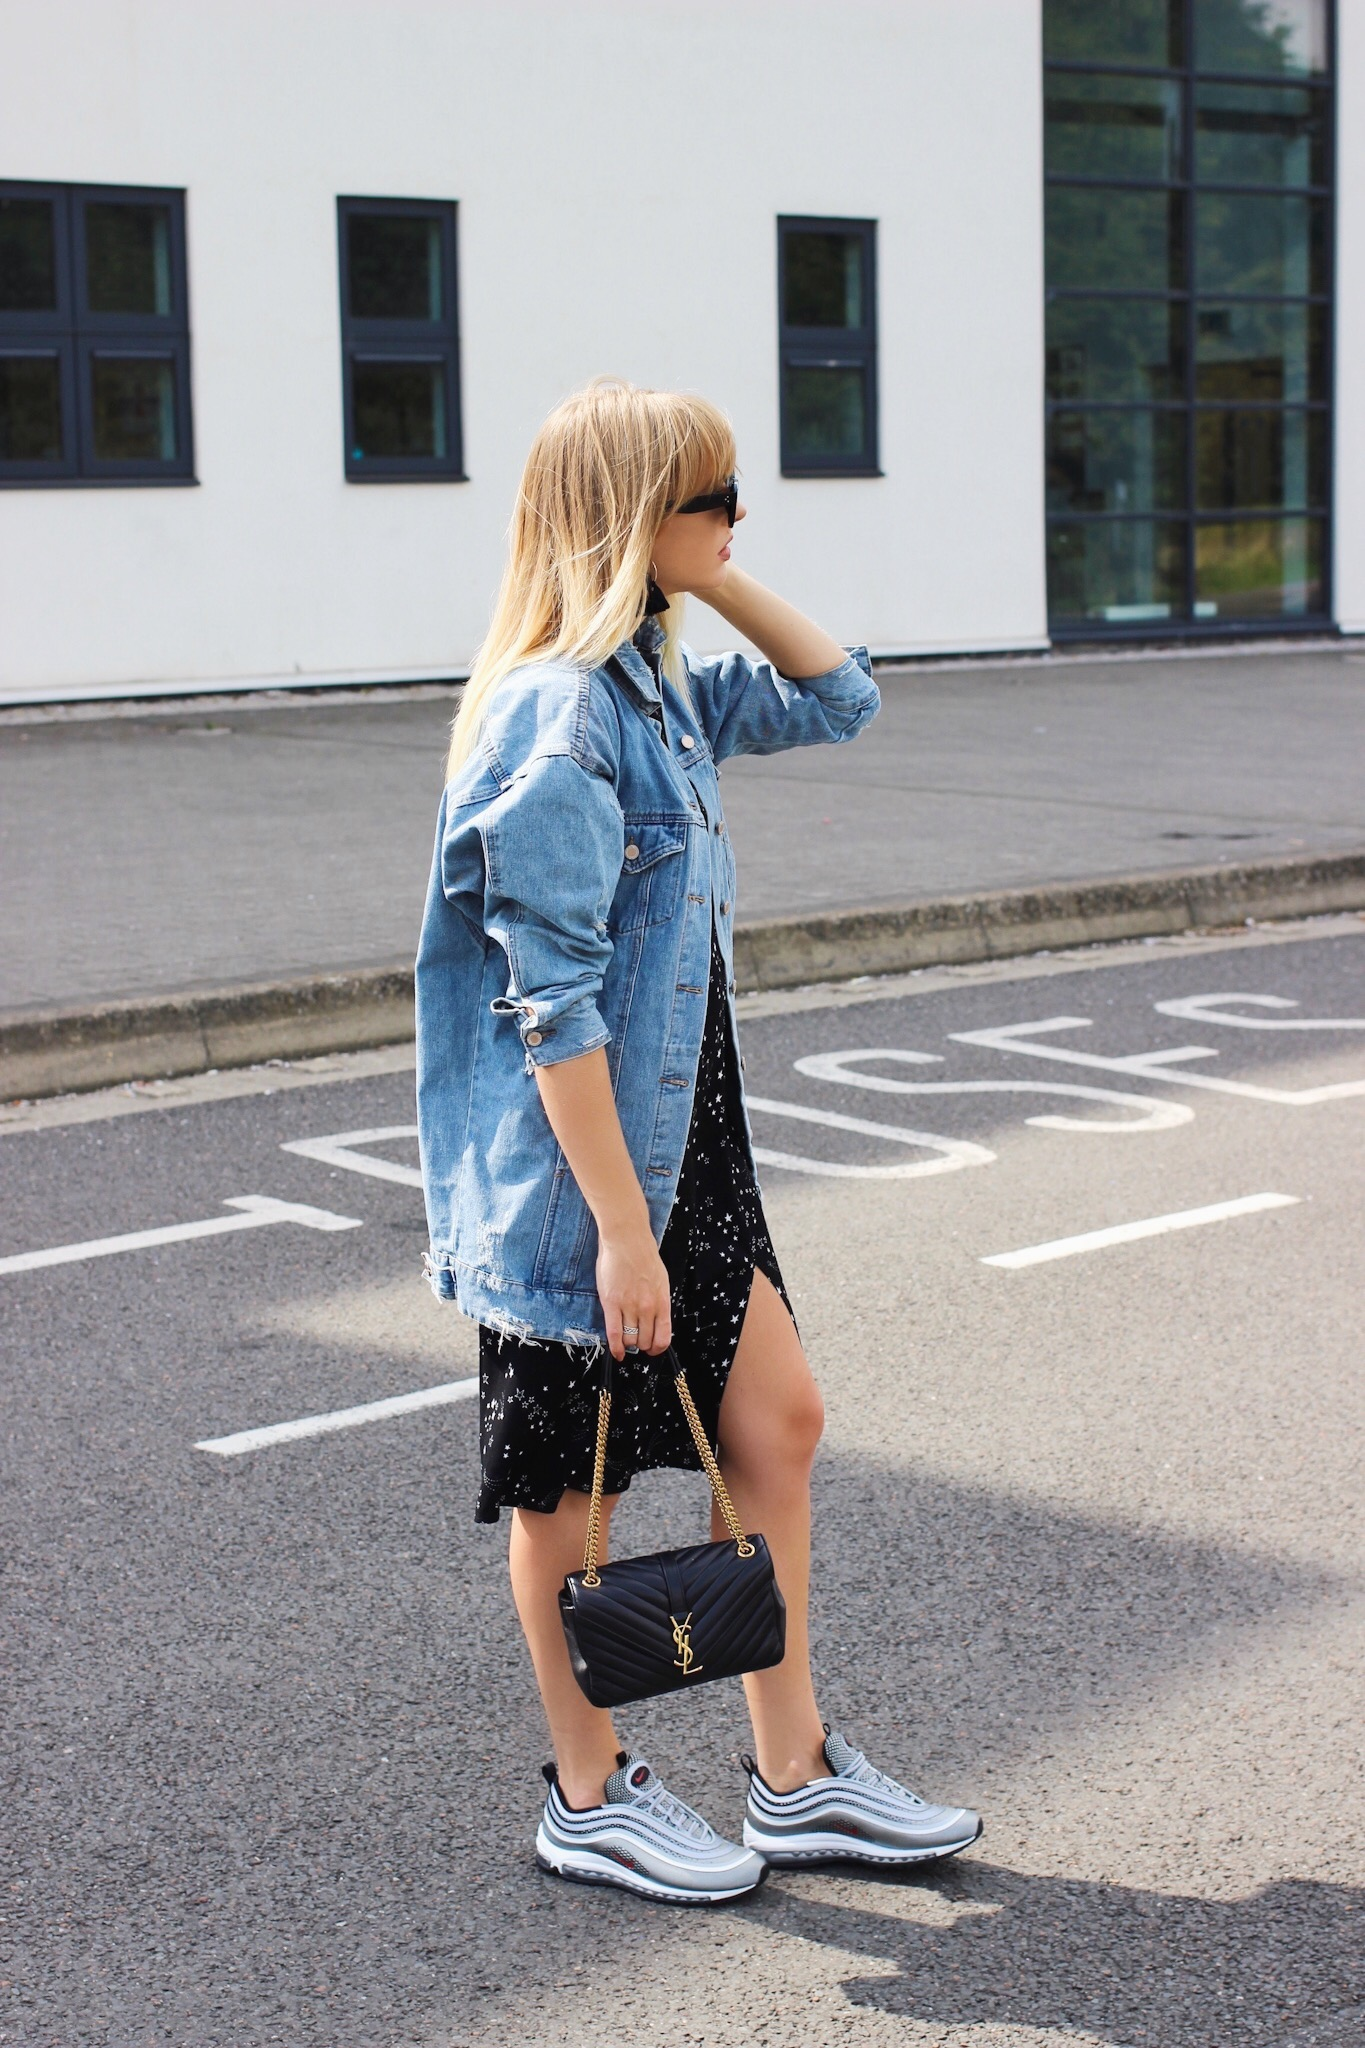 How to style trainers with a dress and oversize denim jacket on fashion blogger charlotte buttrick